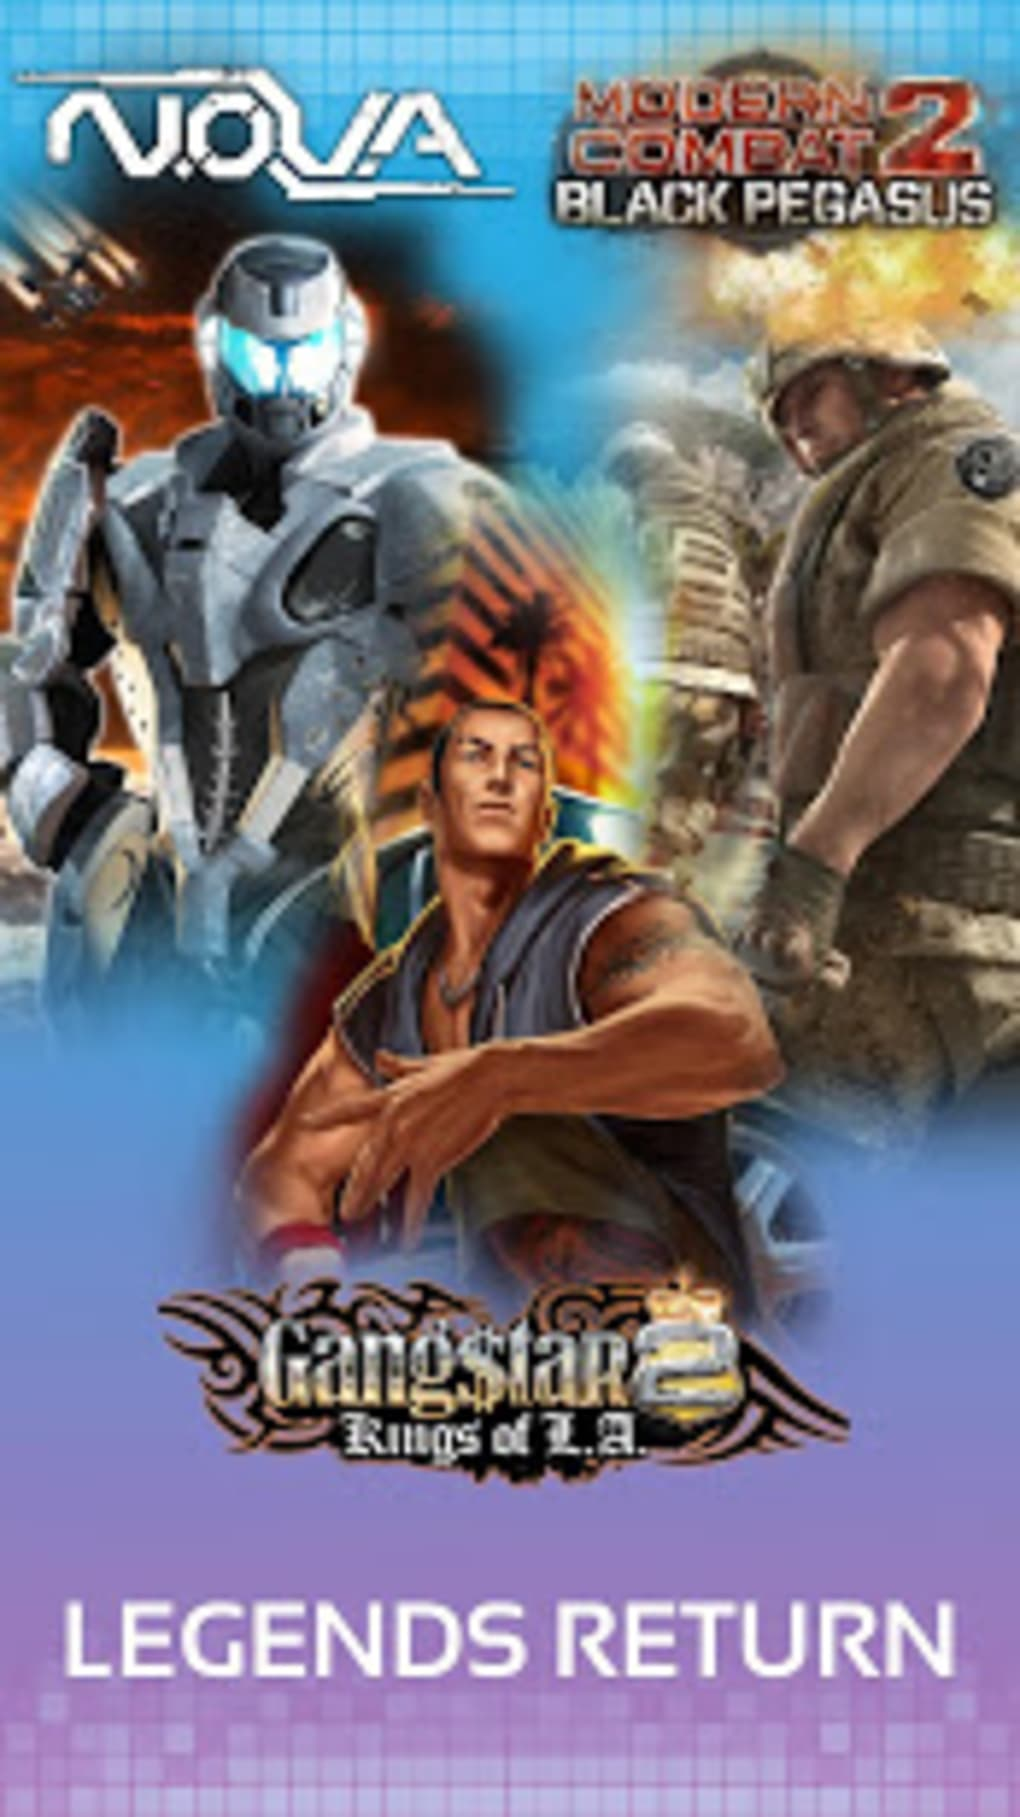 Gameloft Classics: Prime Games Collection for Android - Download